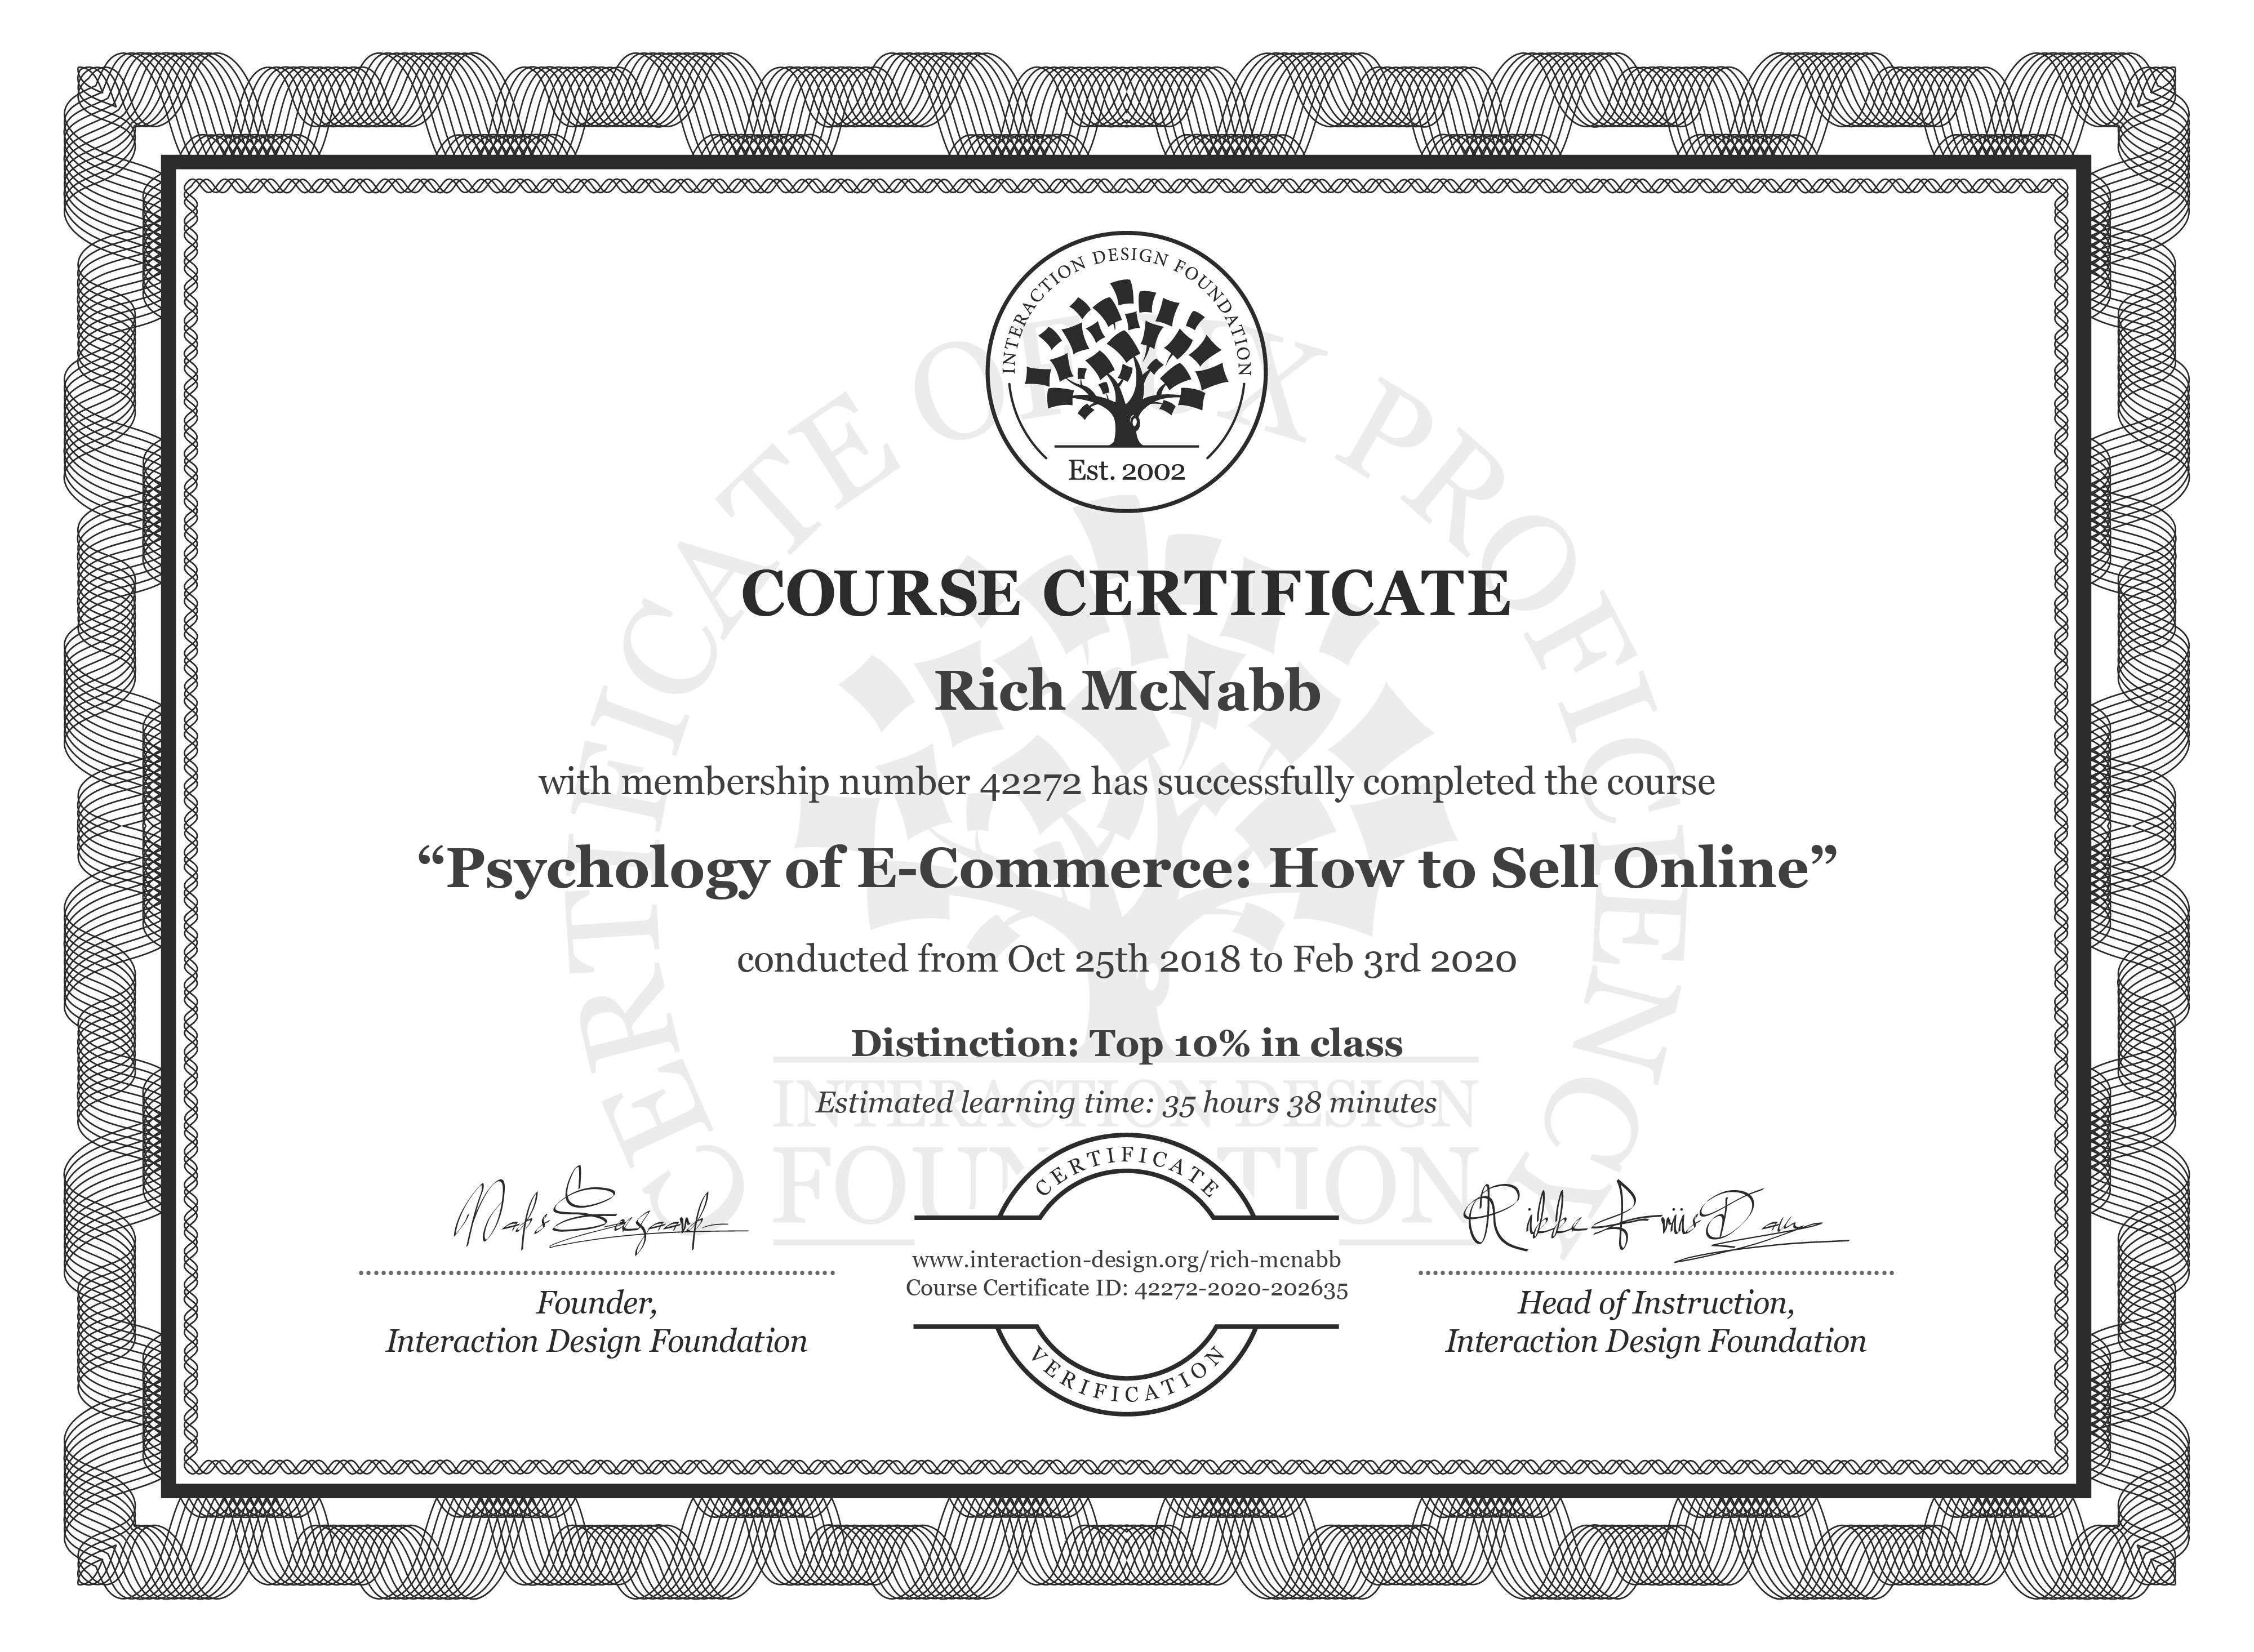 Rich McNabb's Course Certificate: Psychology of E-Commerce: How to Sell Online